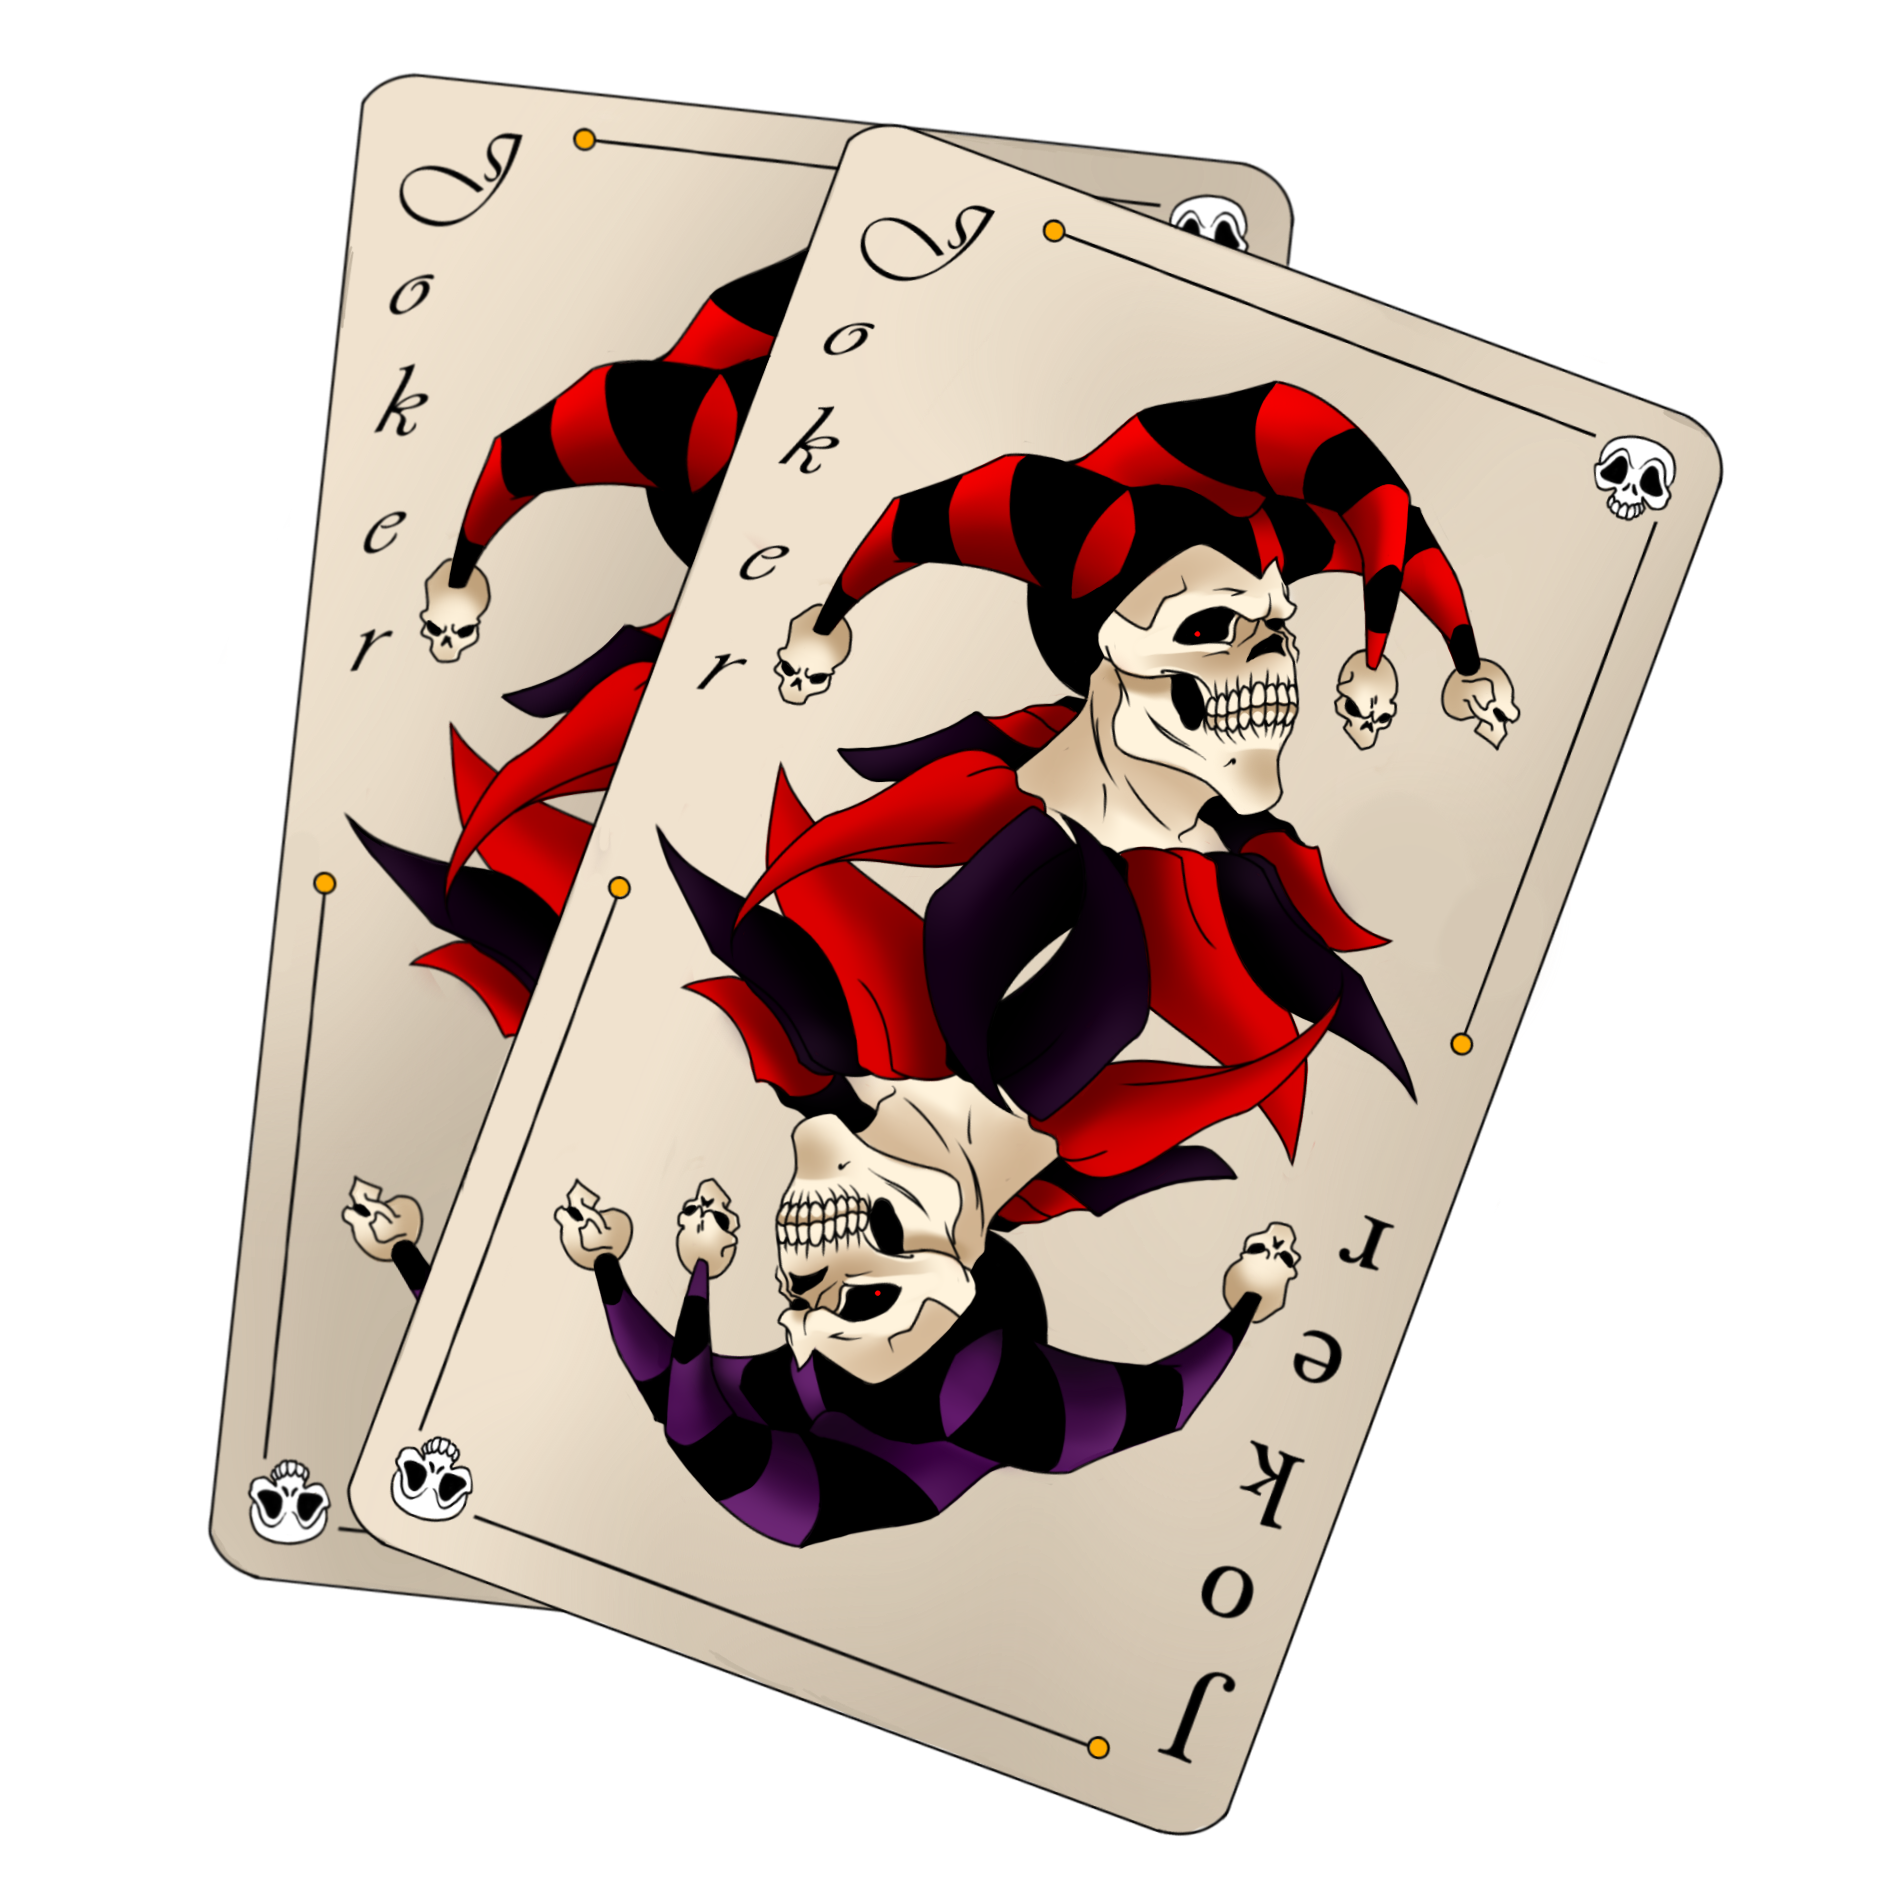 Joker Card Tattoo Ideas: Joker Card Tattoo Design By Panndy On DeviantArt